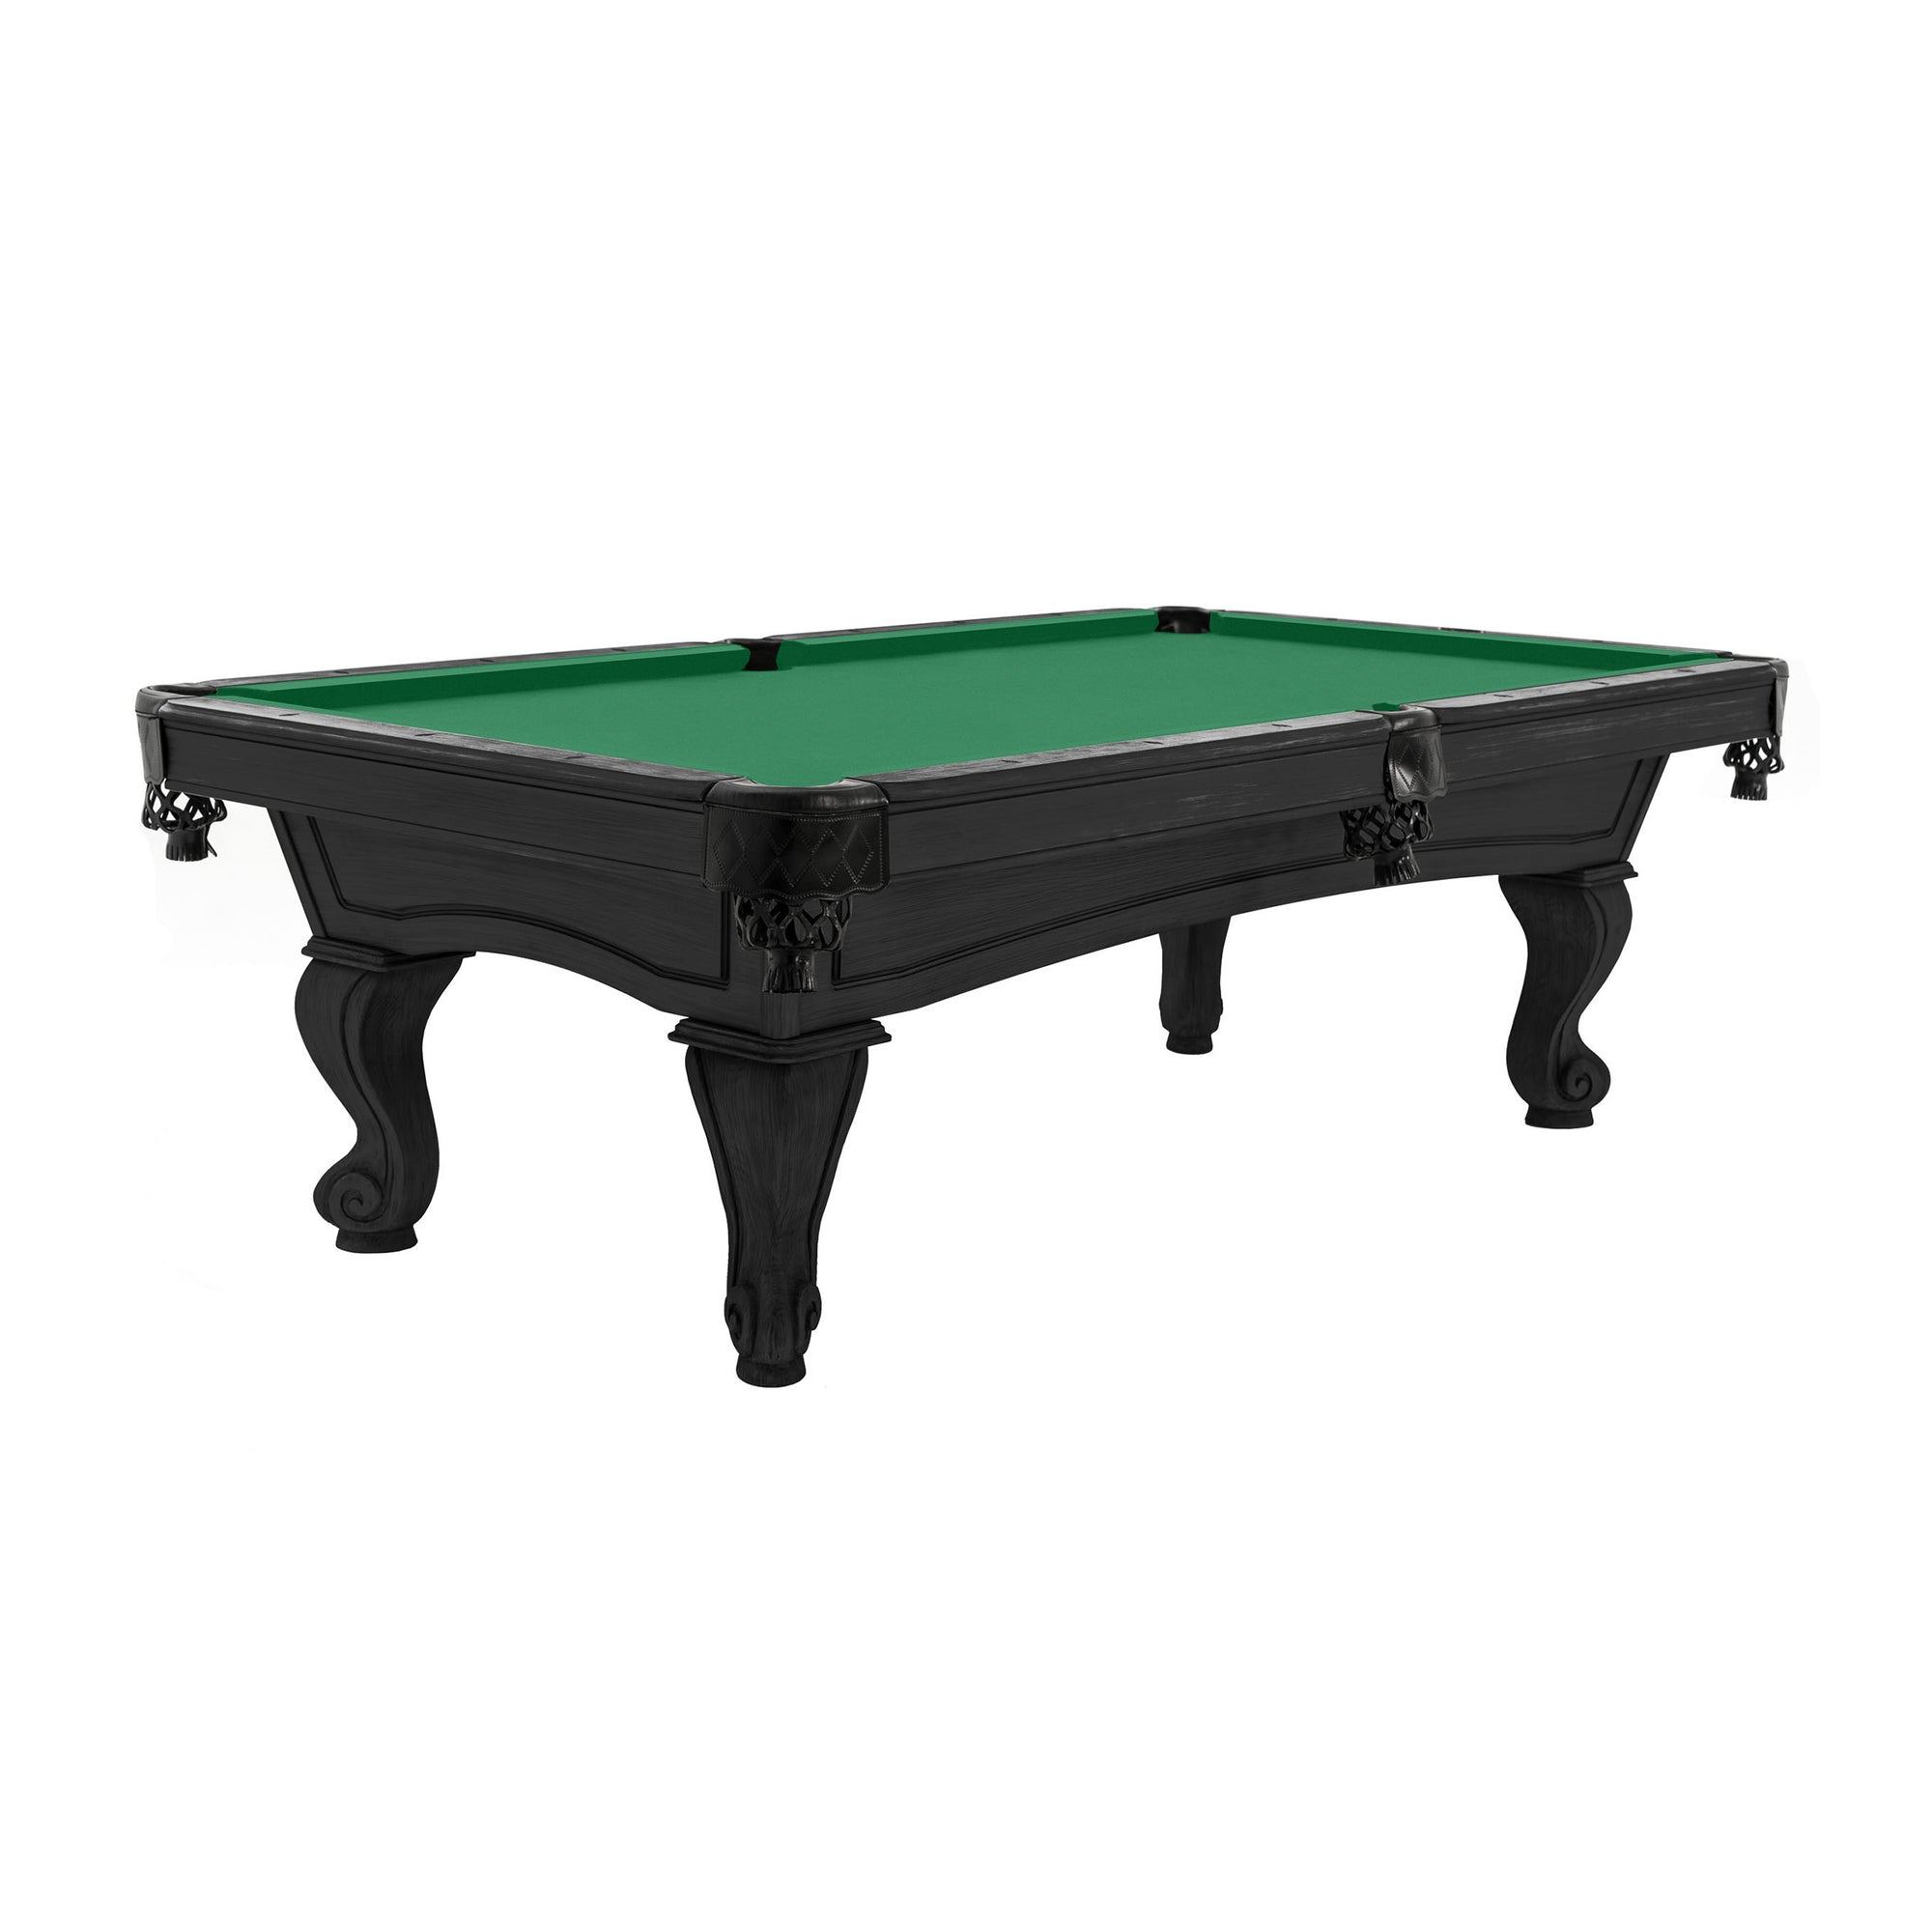 The Resolute Pool Table, Kona with Rams Horn Legs